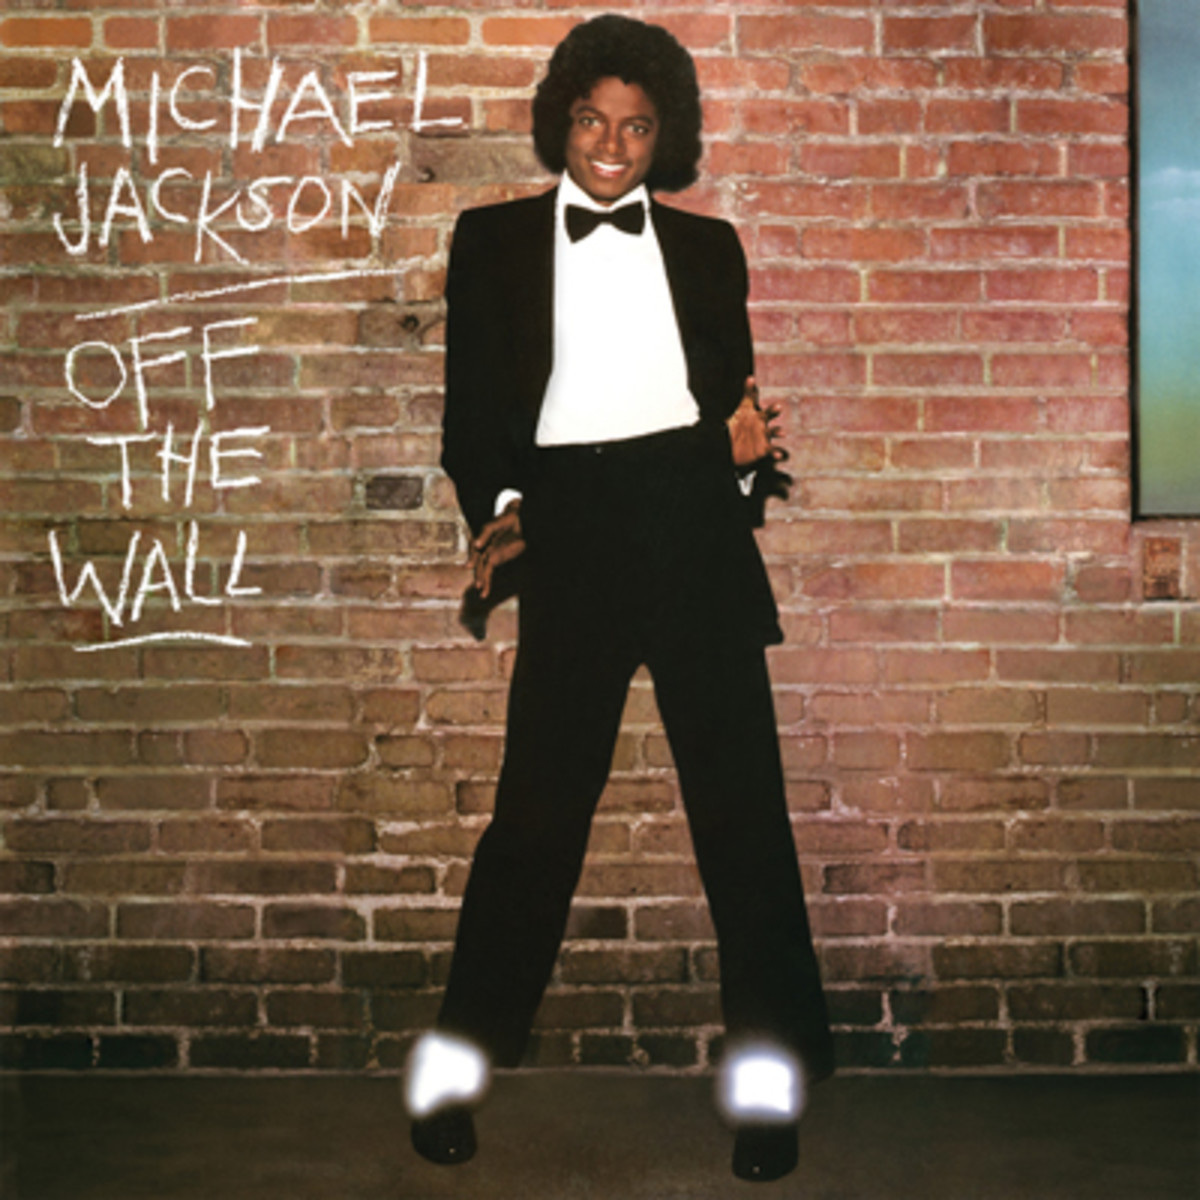 michael jackson off the wall Consequence of Sounds Top 100 Albums Ever